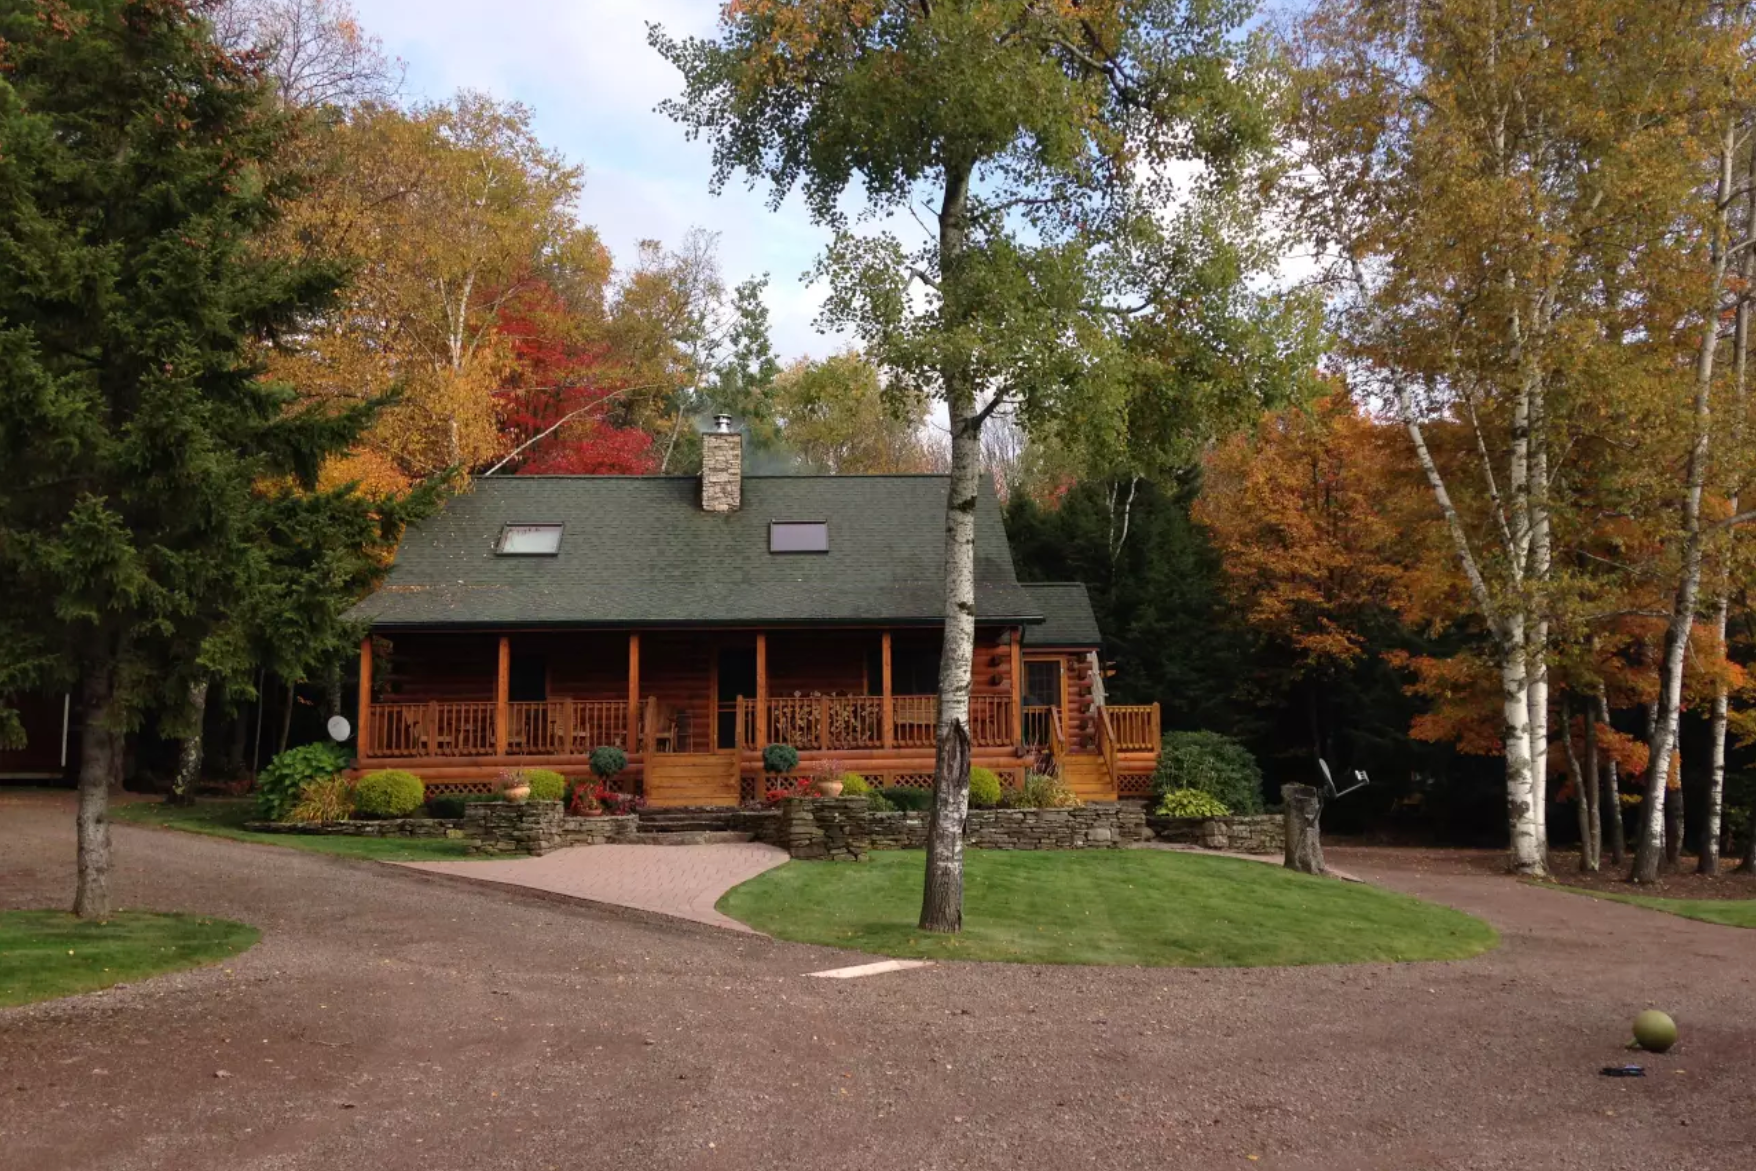 CROW'S NEST CABIN  Jefferson, NY  Full address and info available upon booking  Click  h e re  for details on airbnb.com  Distance: about 12 miles / 15 minutes Capacity: 8 people